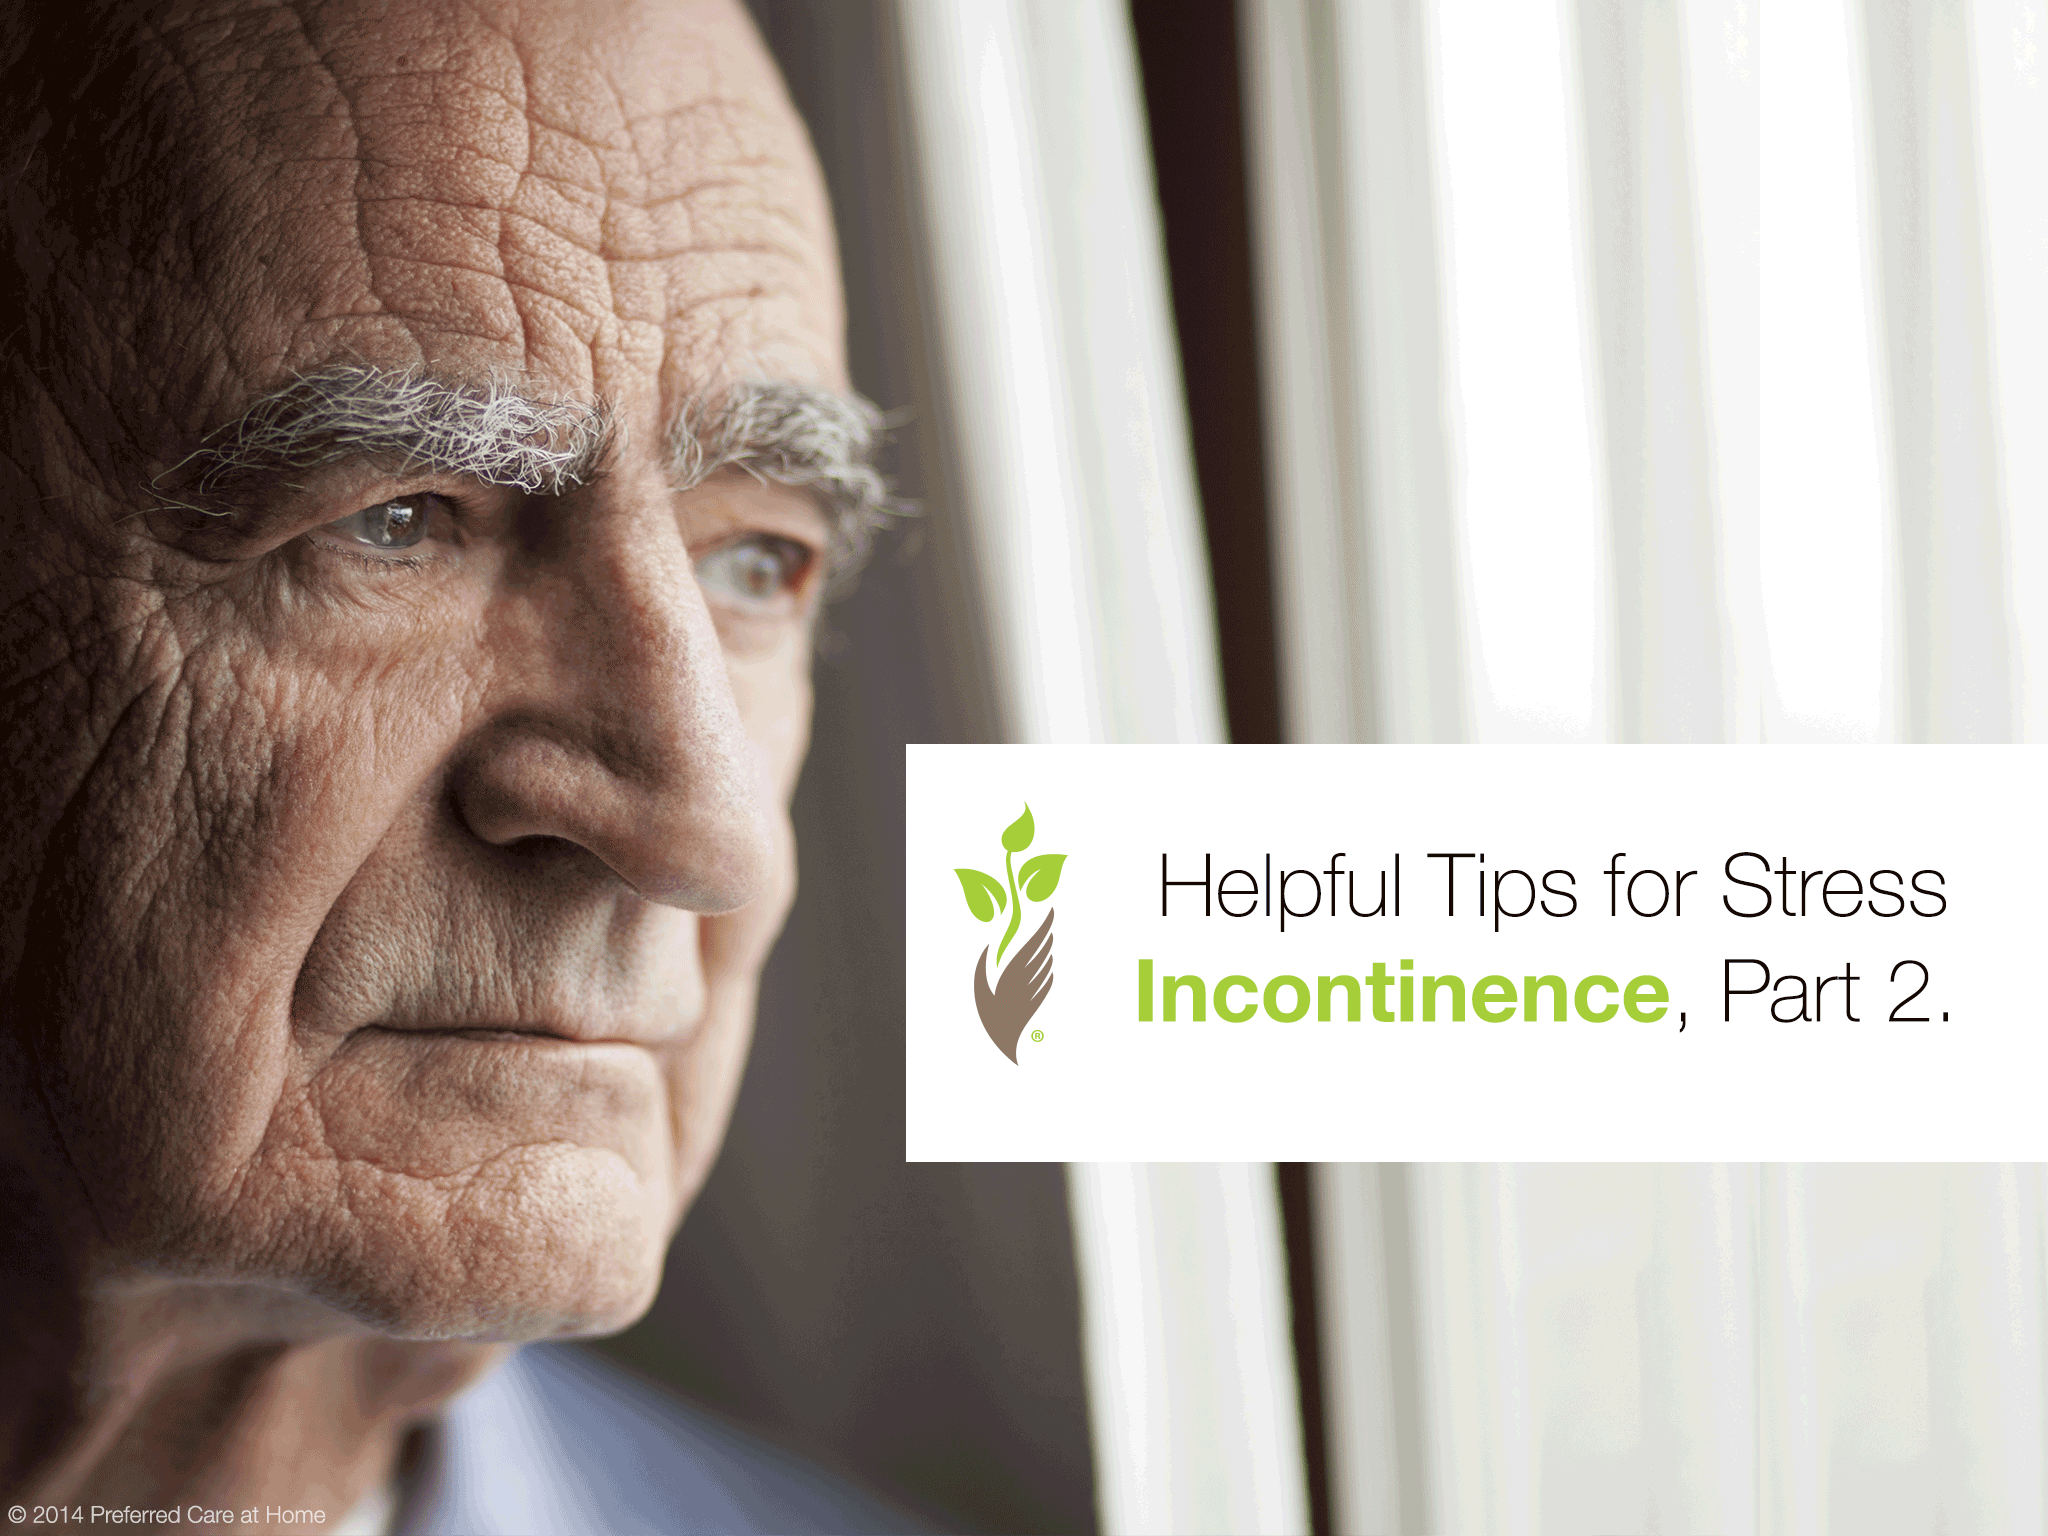 Helpful Tips for Stress Incontinence, Part 2